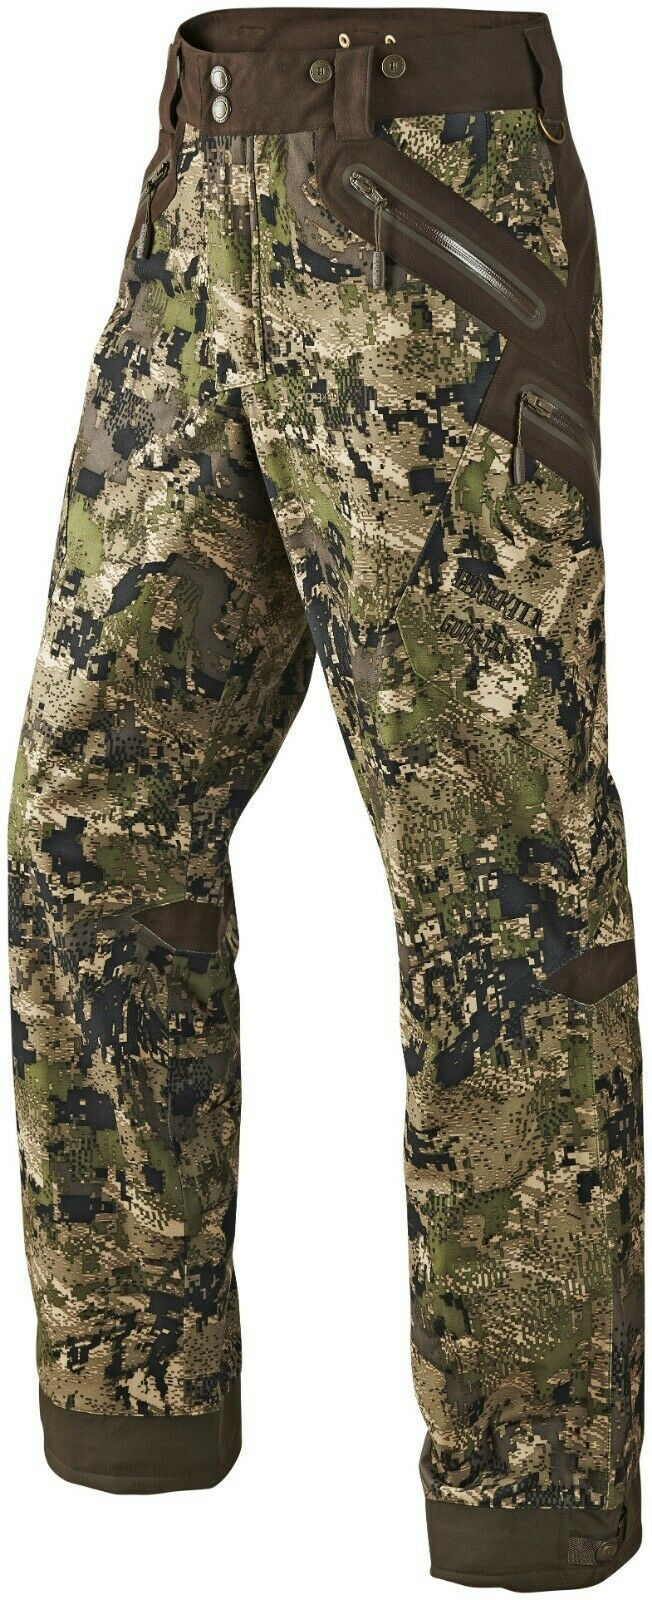 Harkila Stealth Gore-Tex Optifade Shooting Trousers